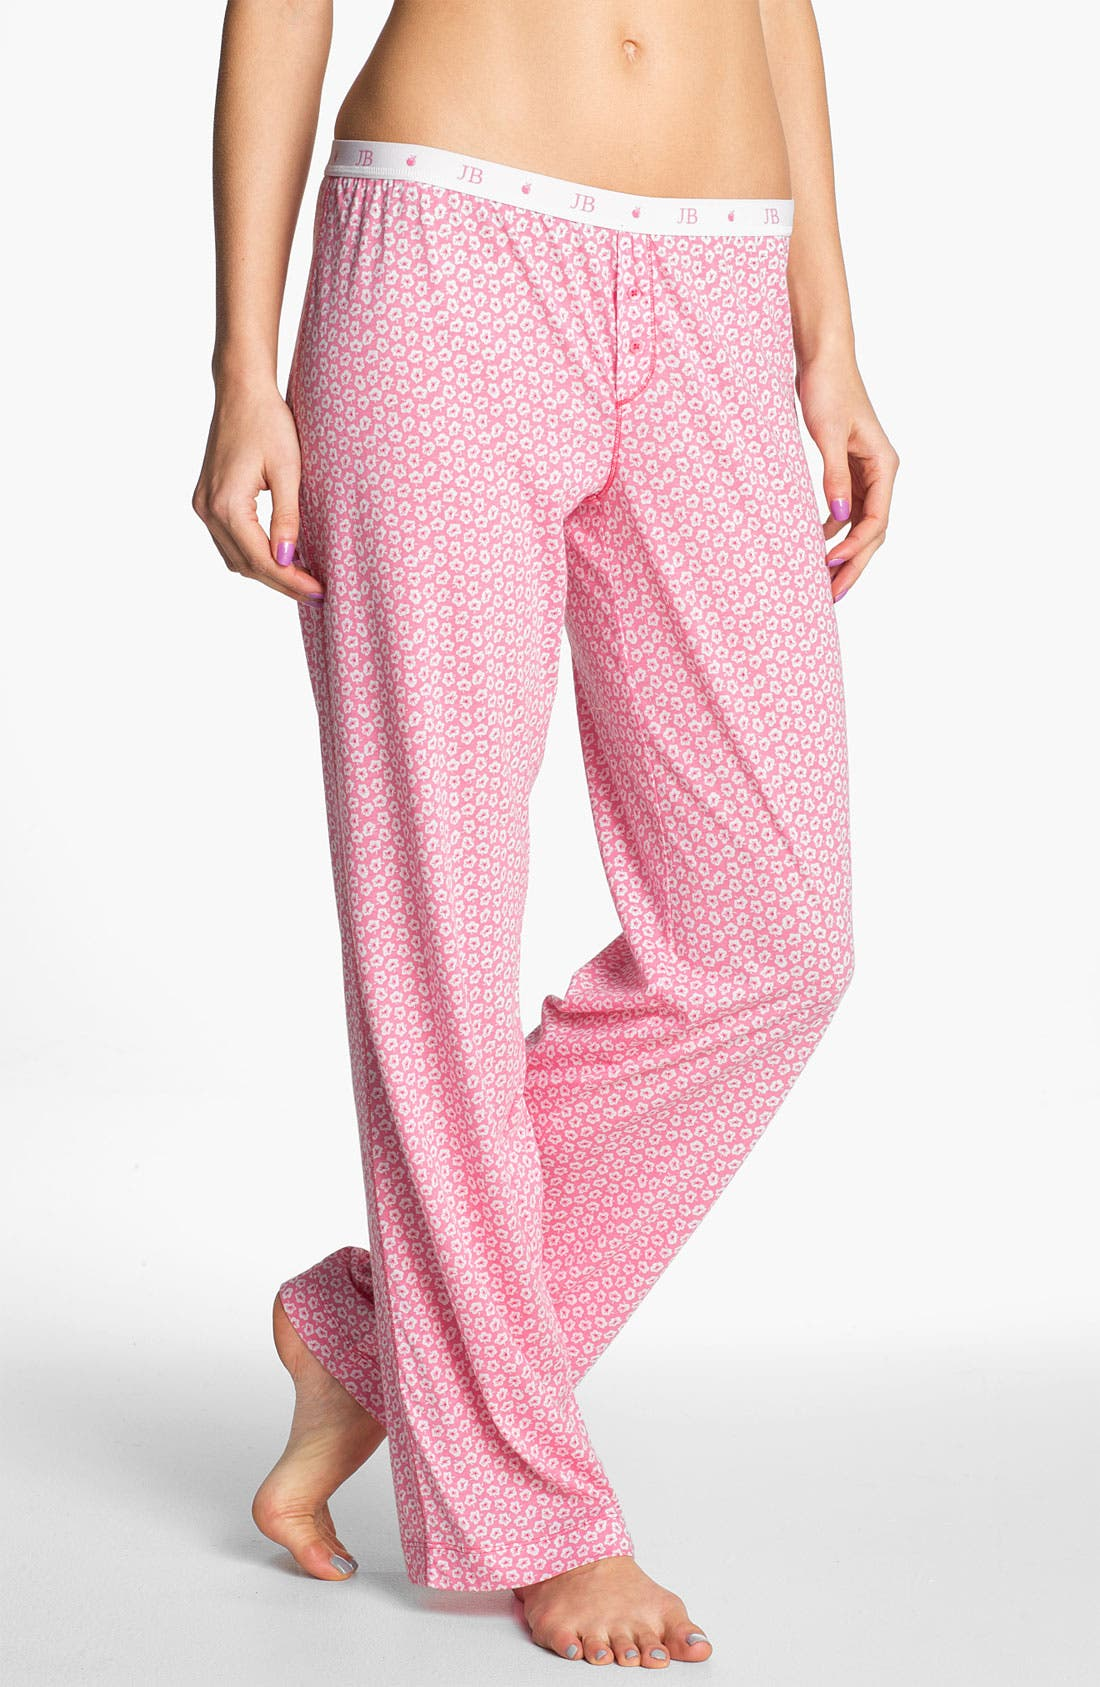 Main Image - Jane & Bleecker New York 'Jane B' Knit Lounge Pants